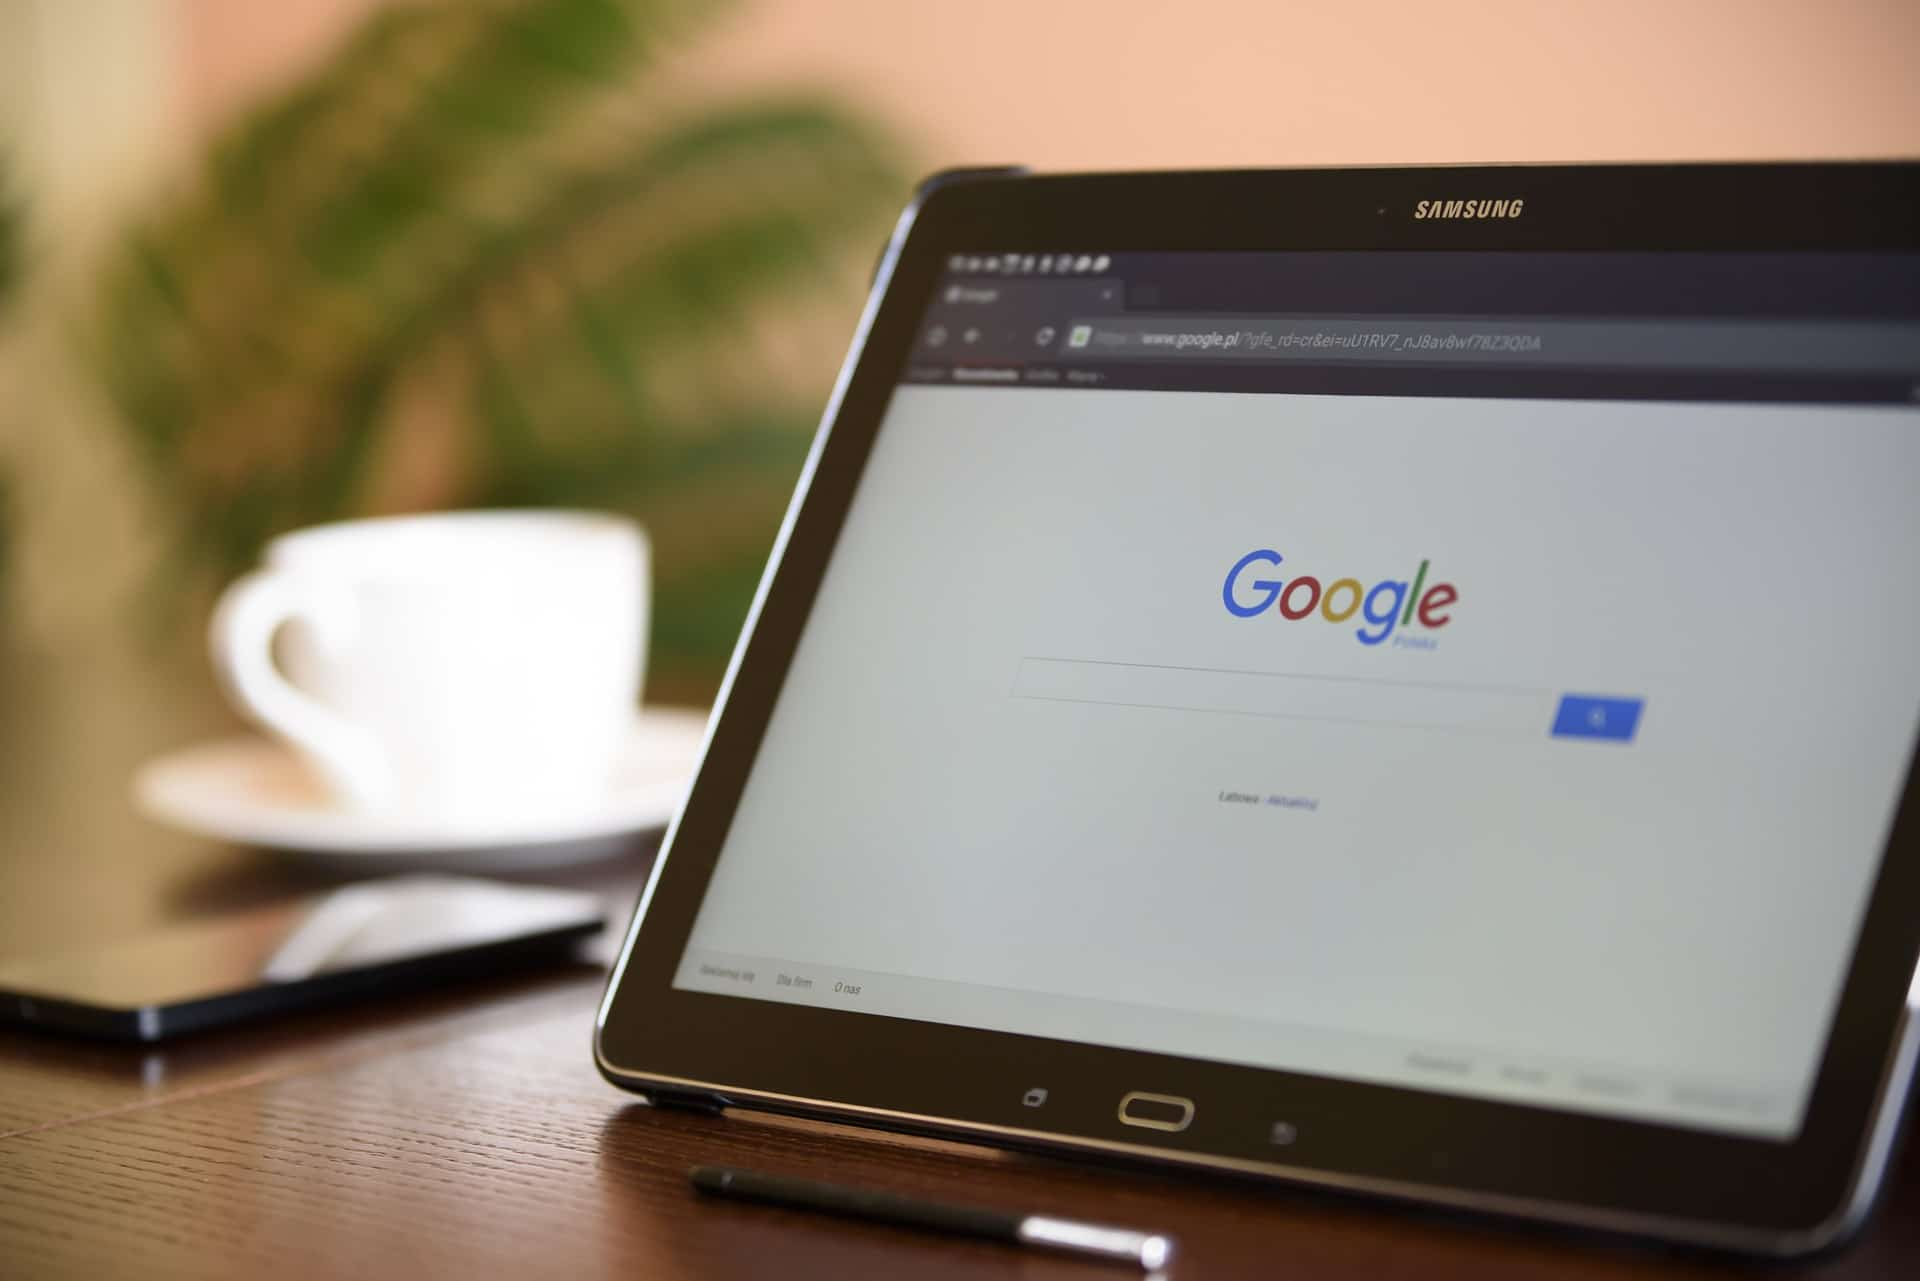 Photo of a tablet showing the Google home page.